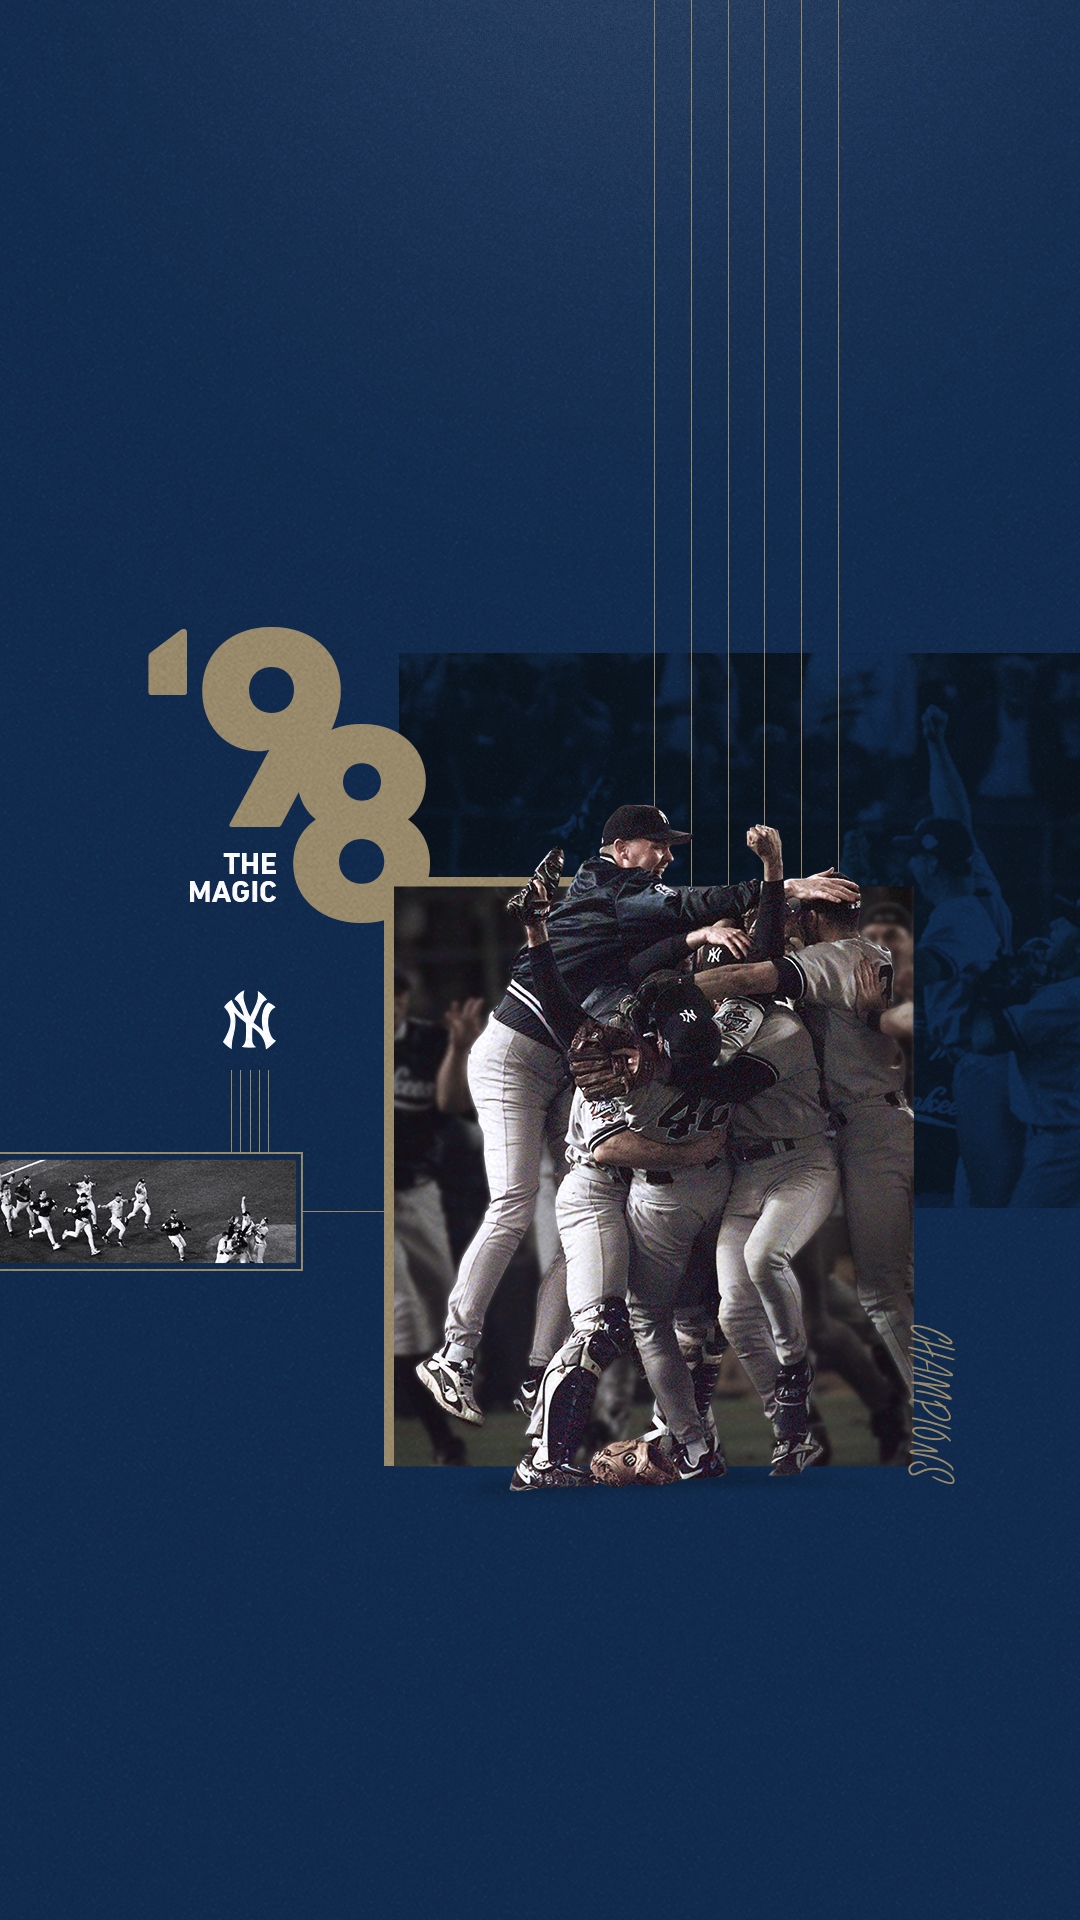 1998 World Series Champions Mobile Wallpapers New York Yankees